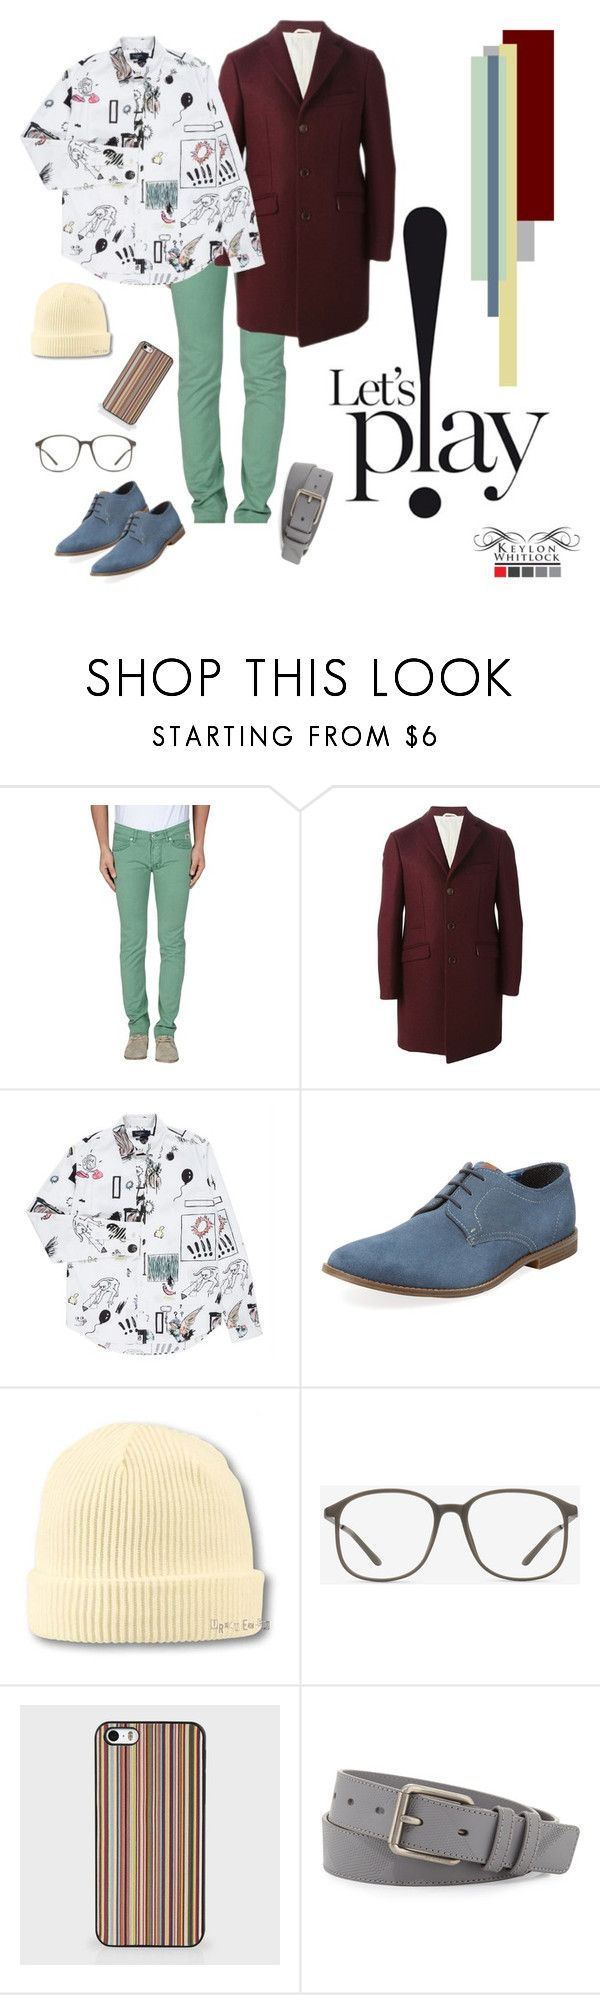 """Let's P!ay"" by keylonwhitlock ❤ liked on Polyvore featuring RoÃ¿ Roger's, Al Duca d'Aosta, Paul Smith, Ben Sherman, Atlantis Caps, EyeBuyDirect.com, Burberry, men's fashion and menswear"